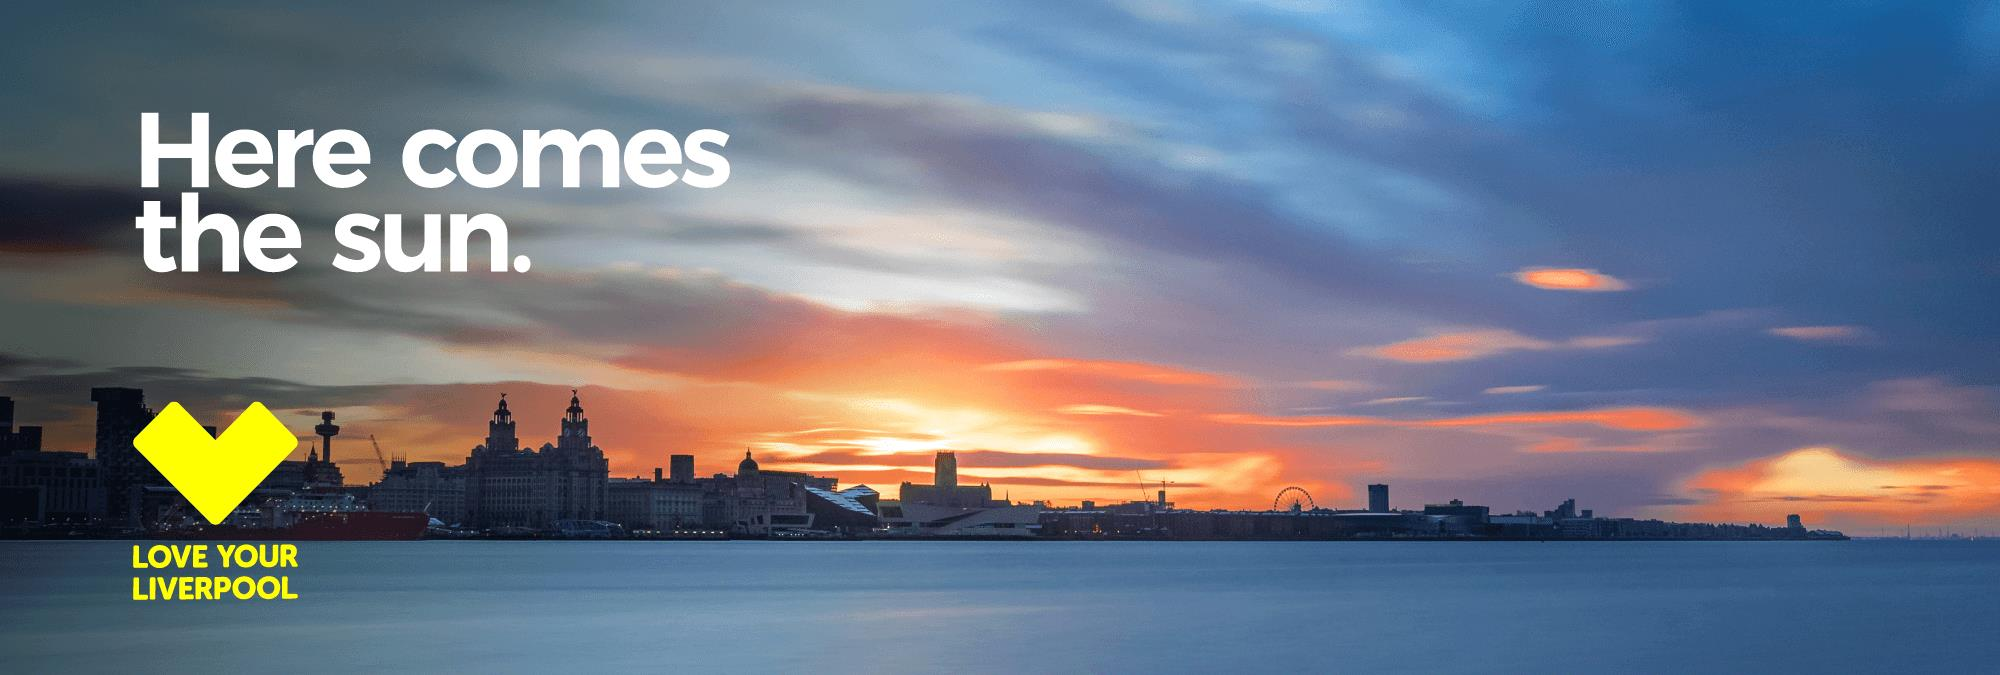 Sun rise over Liverpool skyline taken from across the river